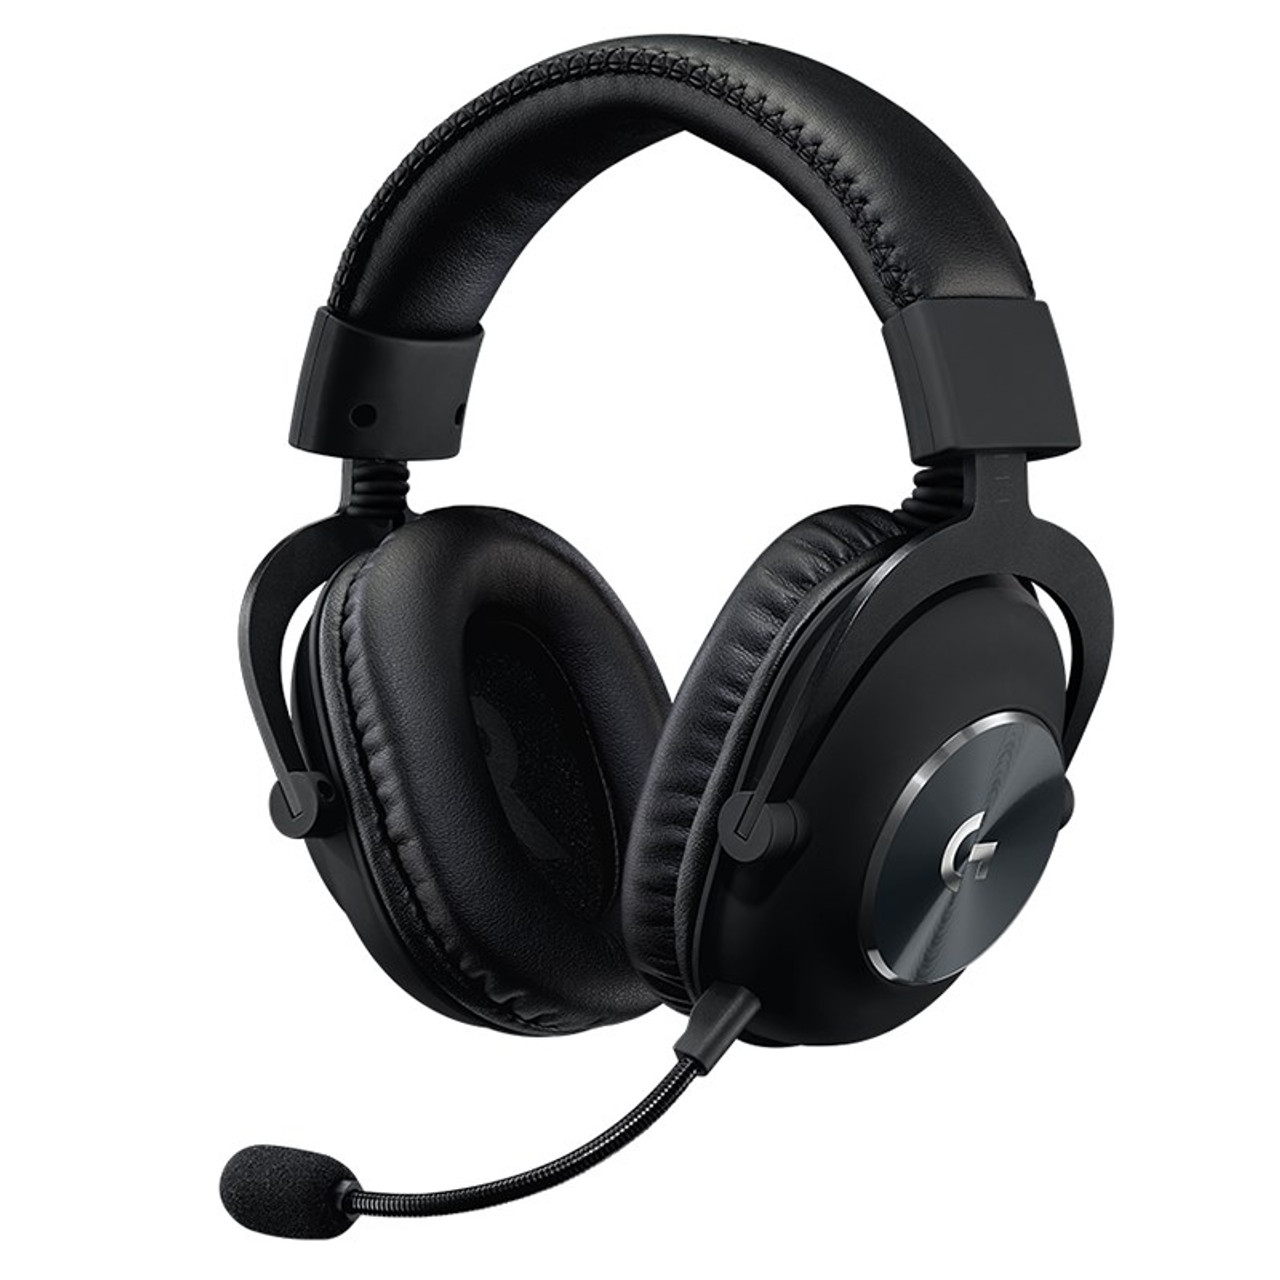 Noise Cancelling Over-Ear Headphones With 6M Cable For BLU Studio Phone Series